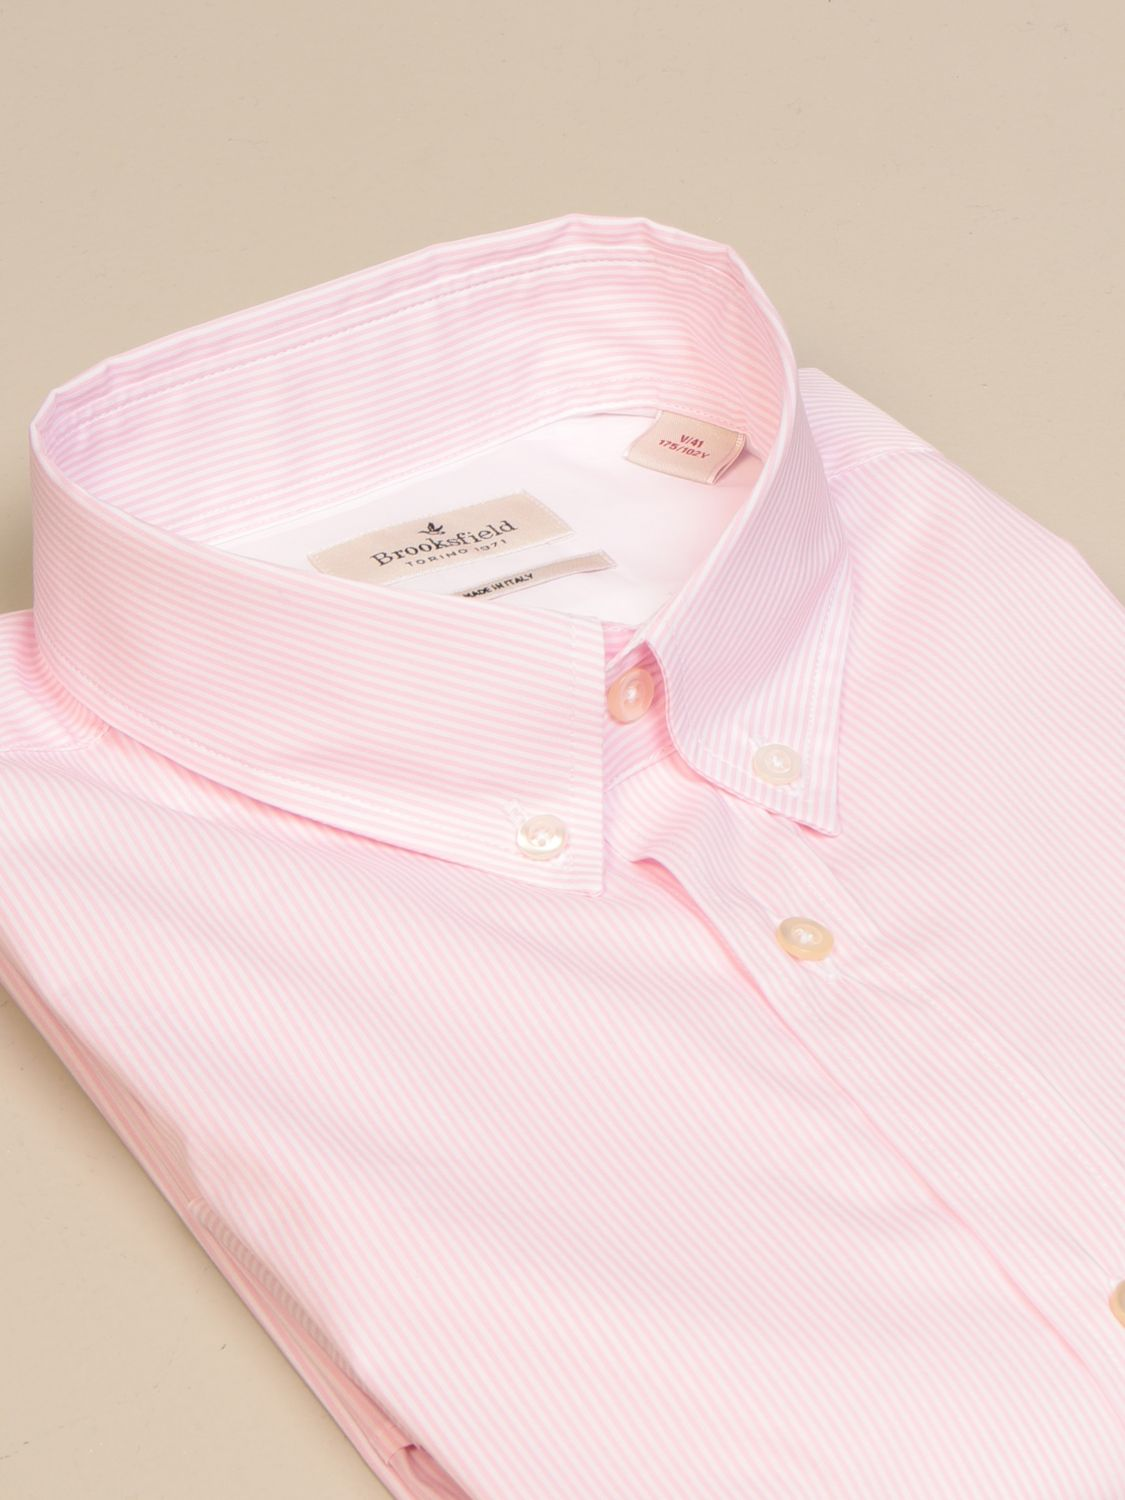 Shirt Brooksfield: Brooksfield shirt in stretch poplin with button down collar pink 2